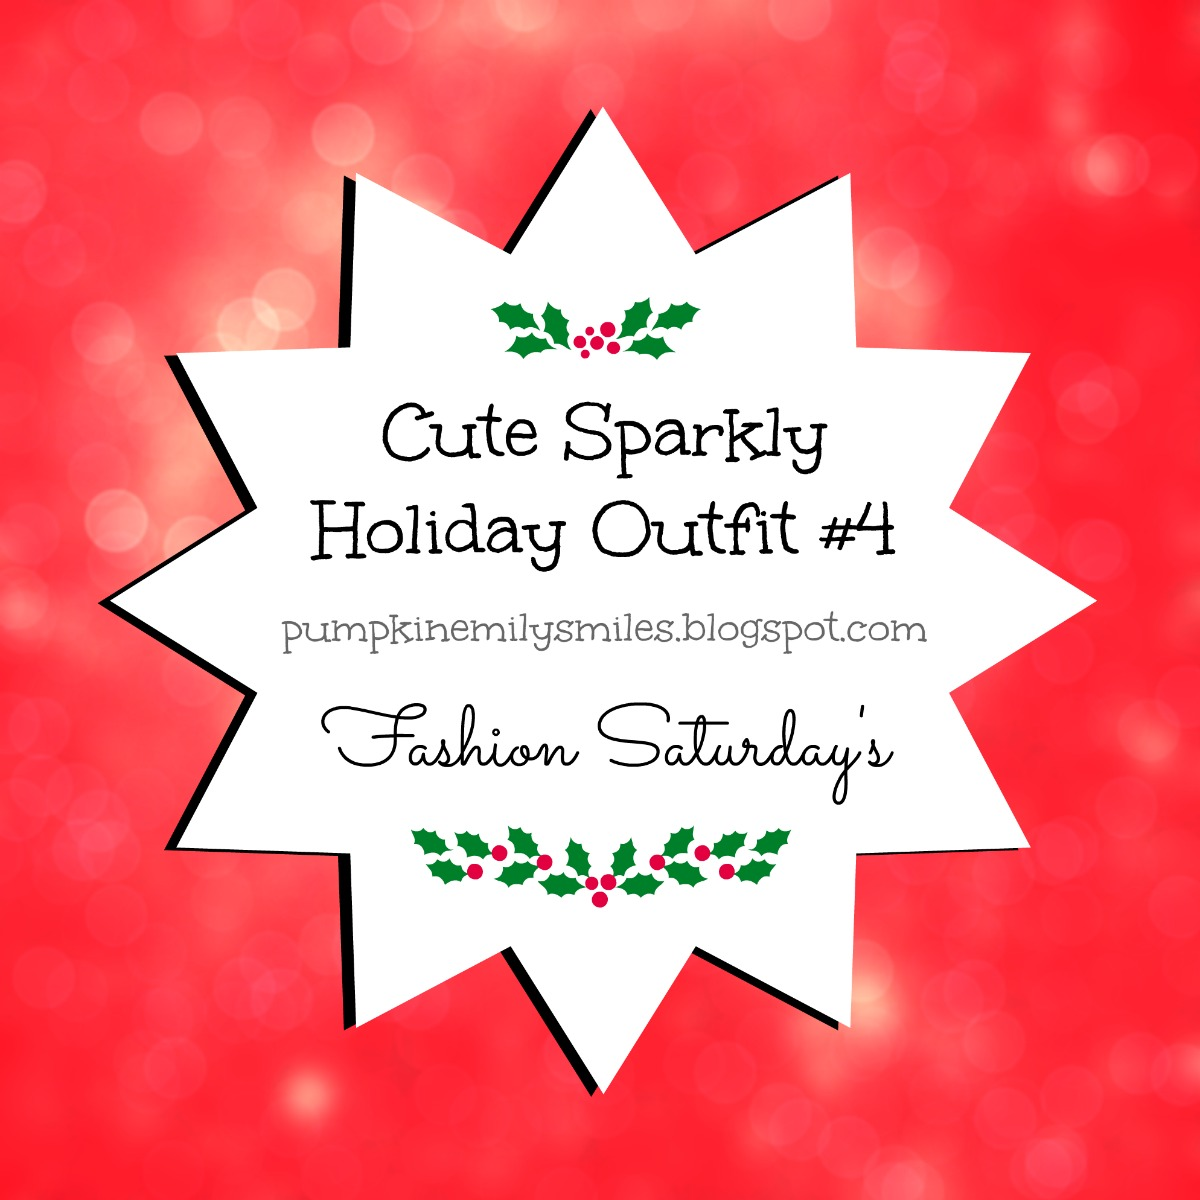 Cute Sparkly Holiday Outfit #4 Fashion Saturday's